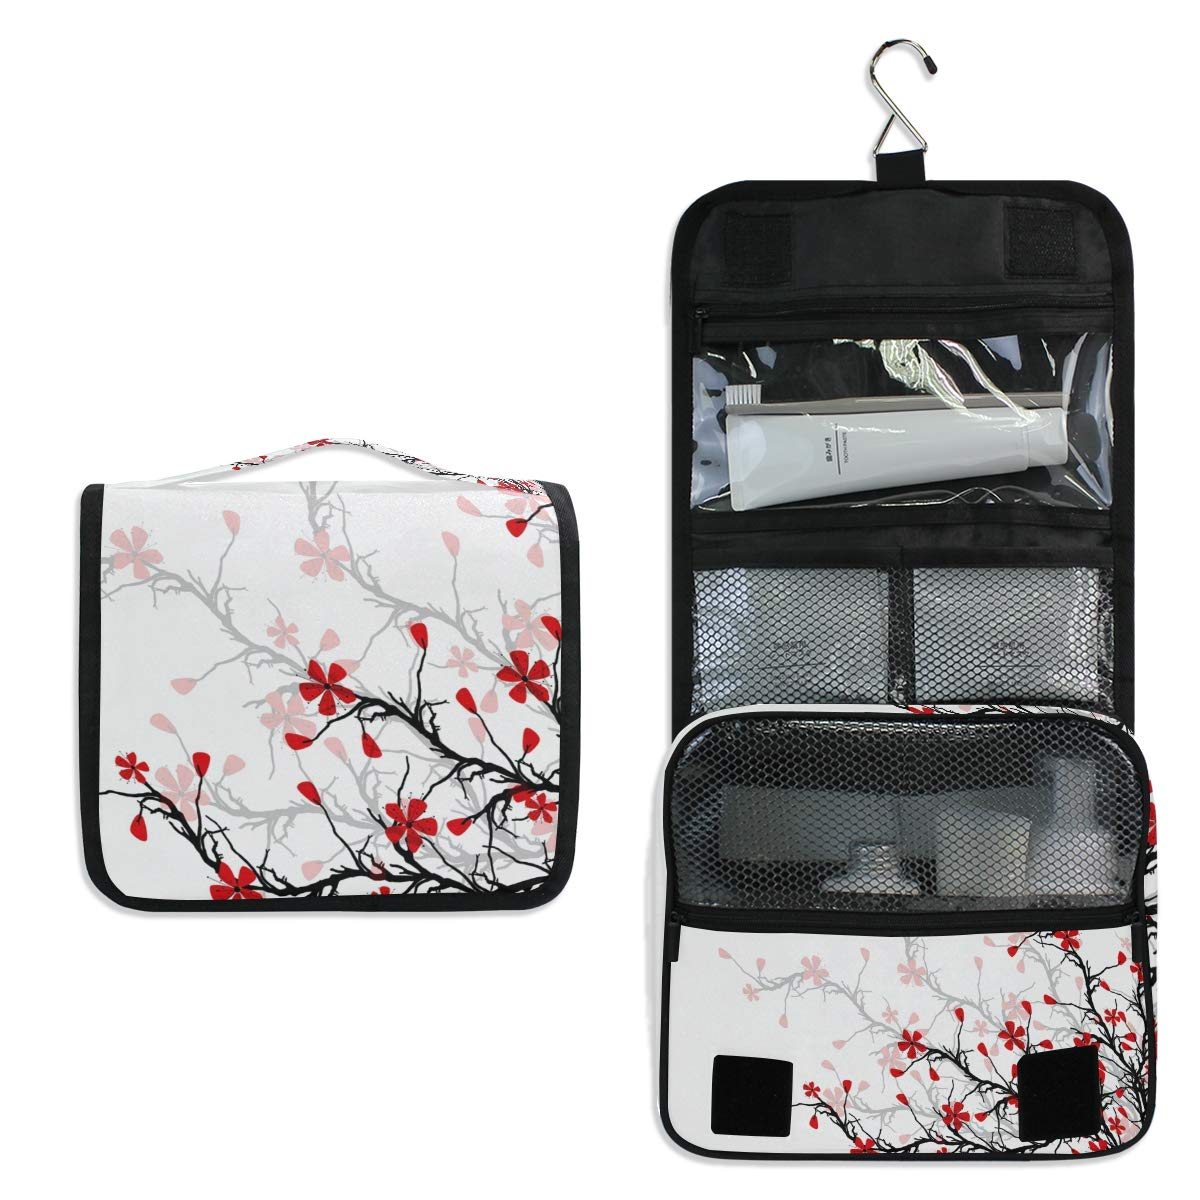 ALAZA Japanese Cherry Blossom Sakura Travel Toiletry Bag Hanging Multifunction Cosmetic Case Portable Makeup Pouch Organizer with Hook